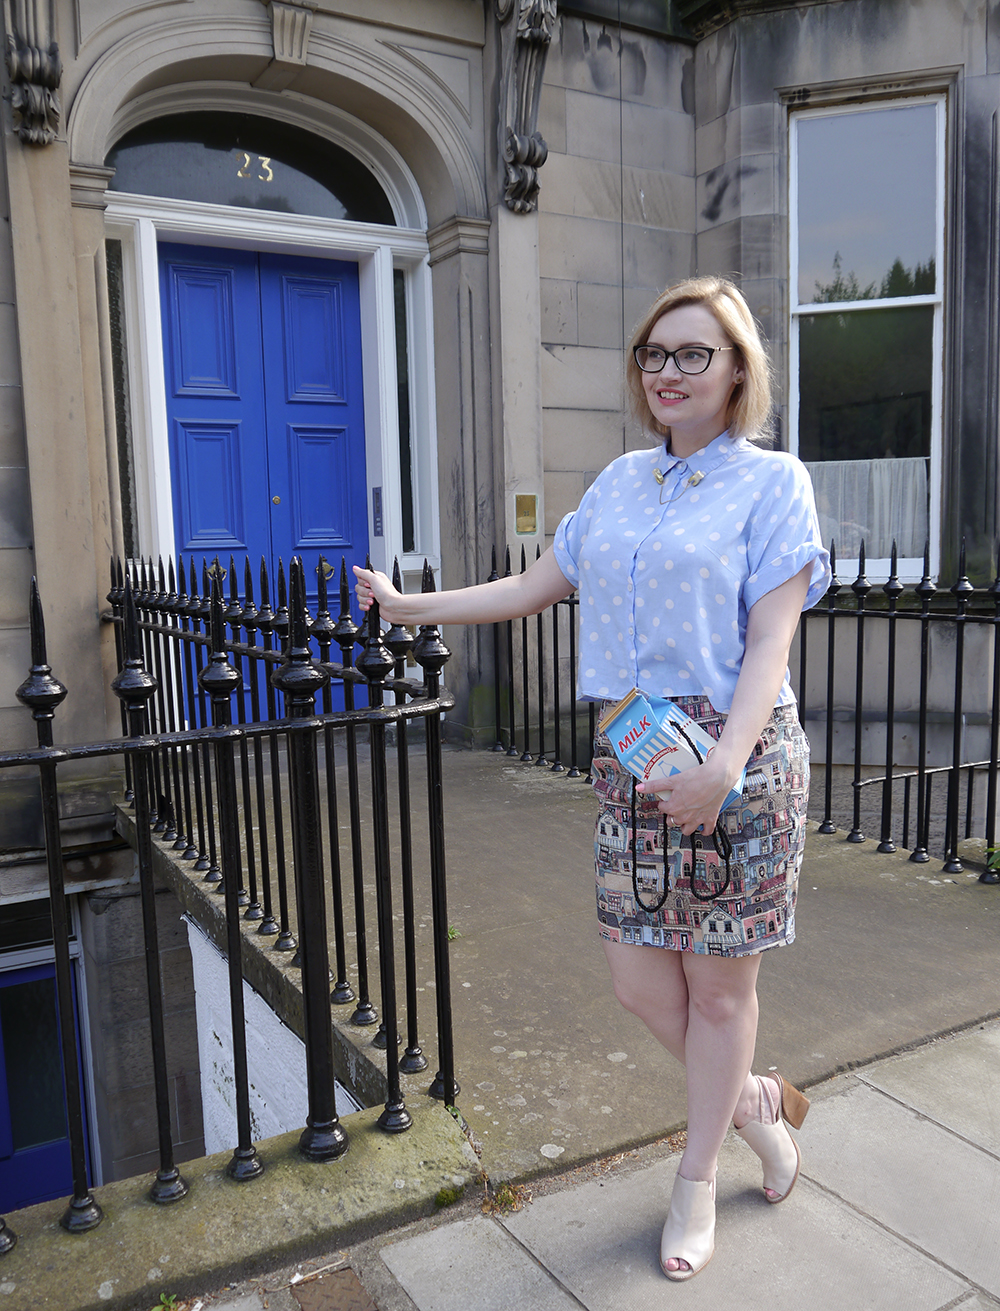 Scottish blogger, Edinburgh blogger, Wardrobe Conversations, polkadot shirt, By Hand London skirt, Scottish street style, quirky street style, dressing to a theme, food inspired outfit, pale girl style,